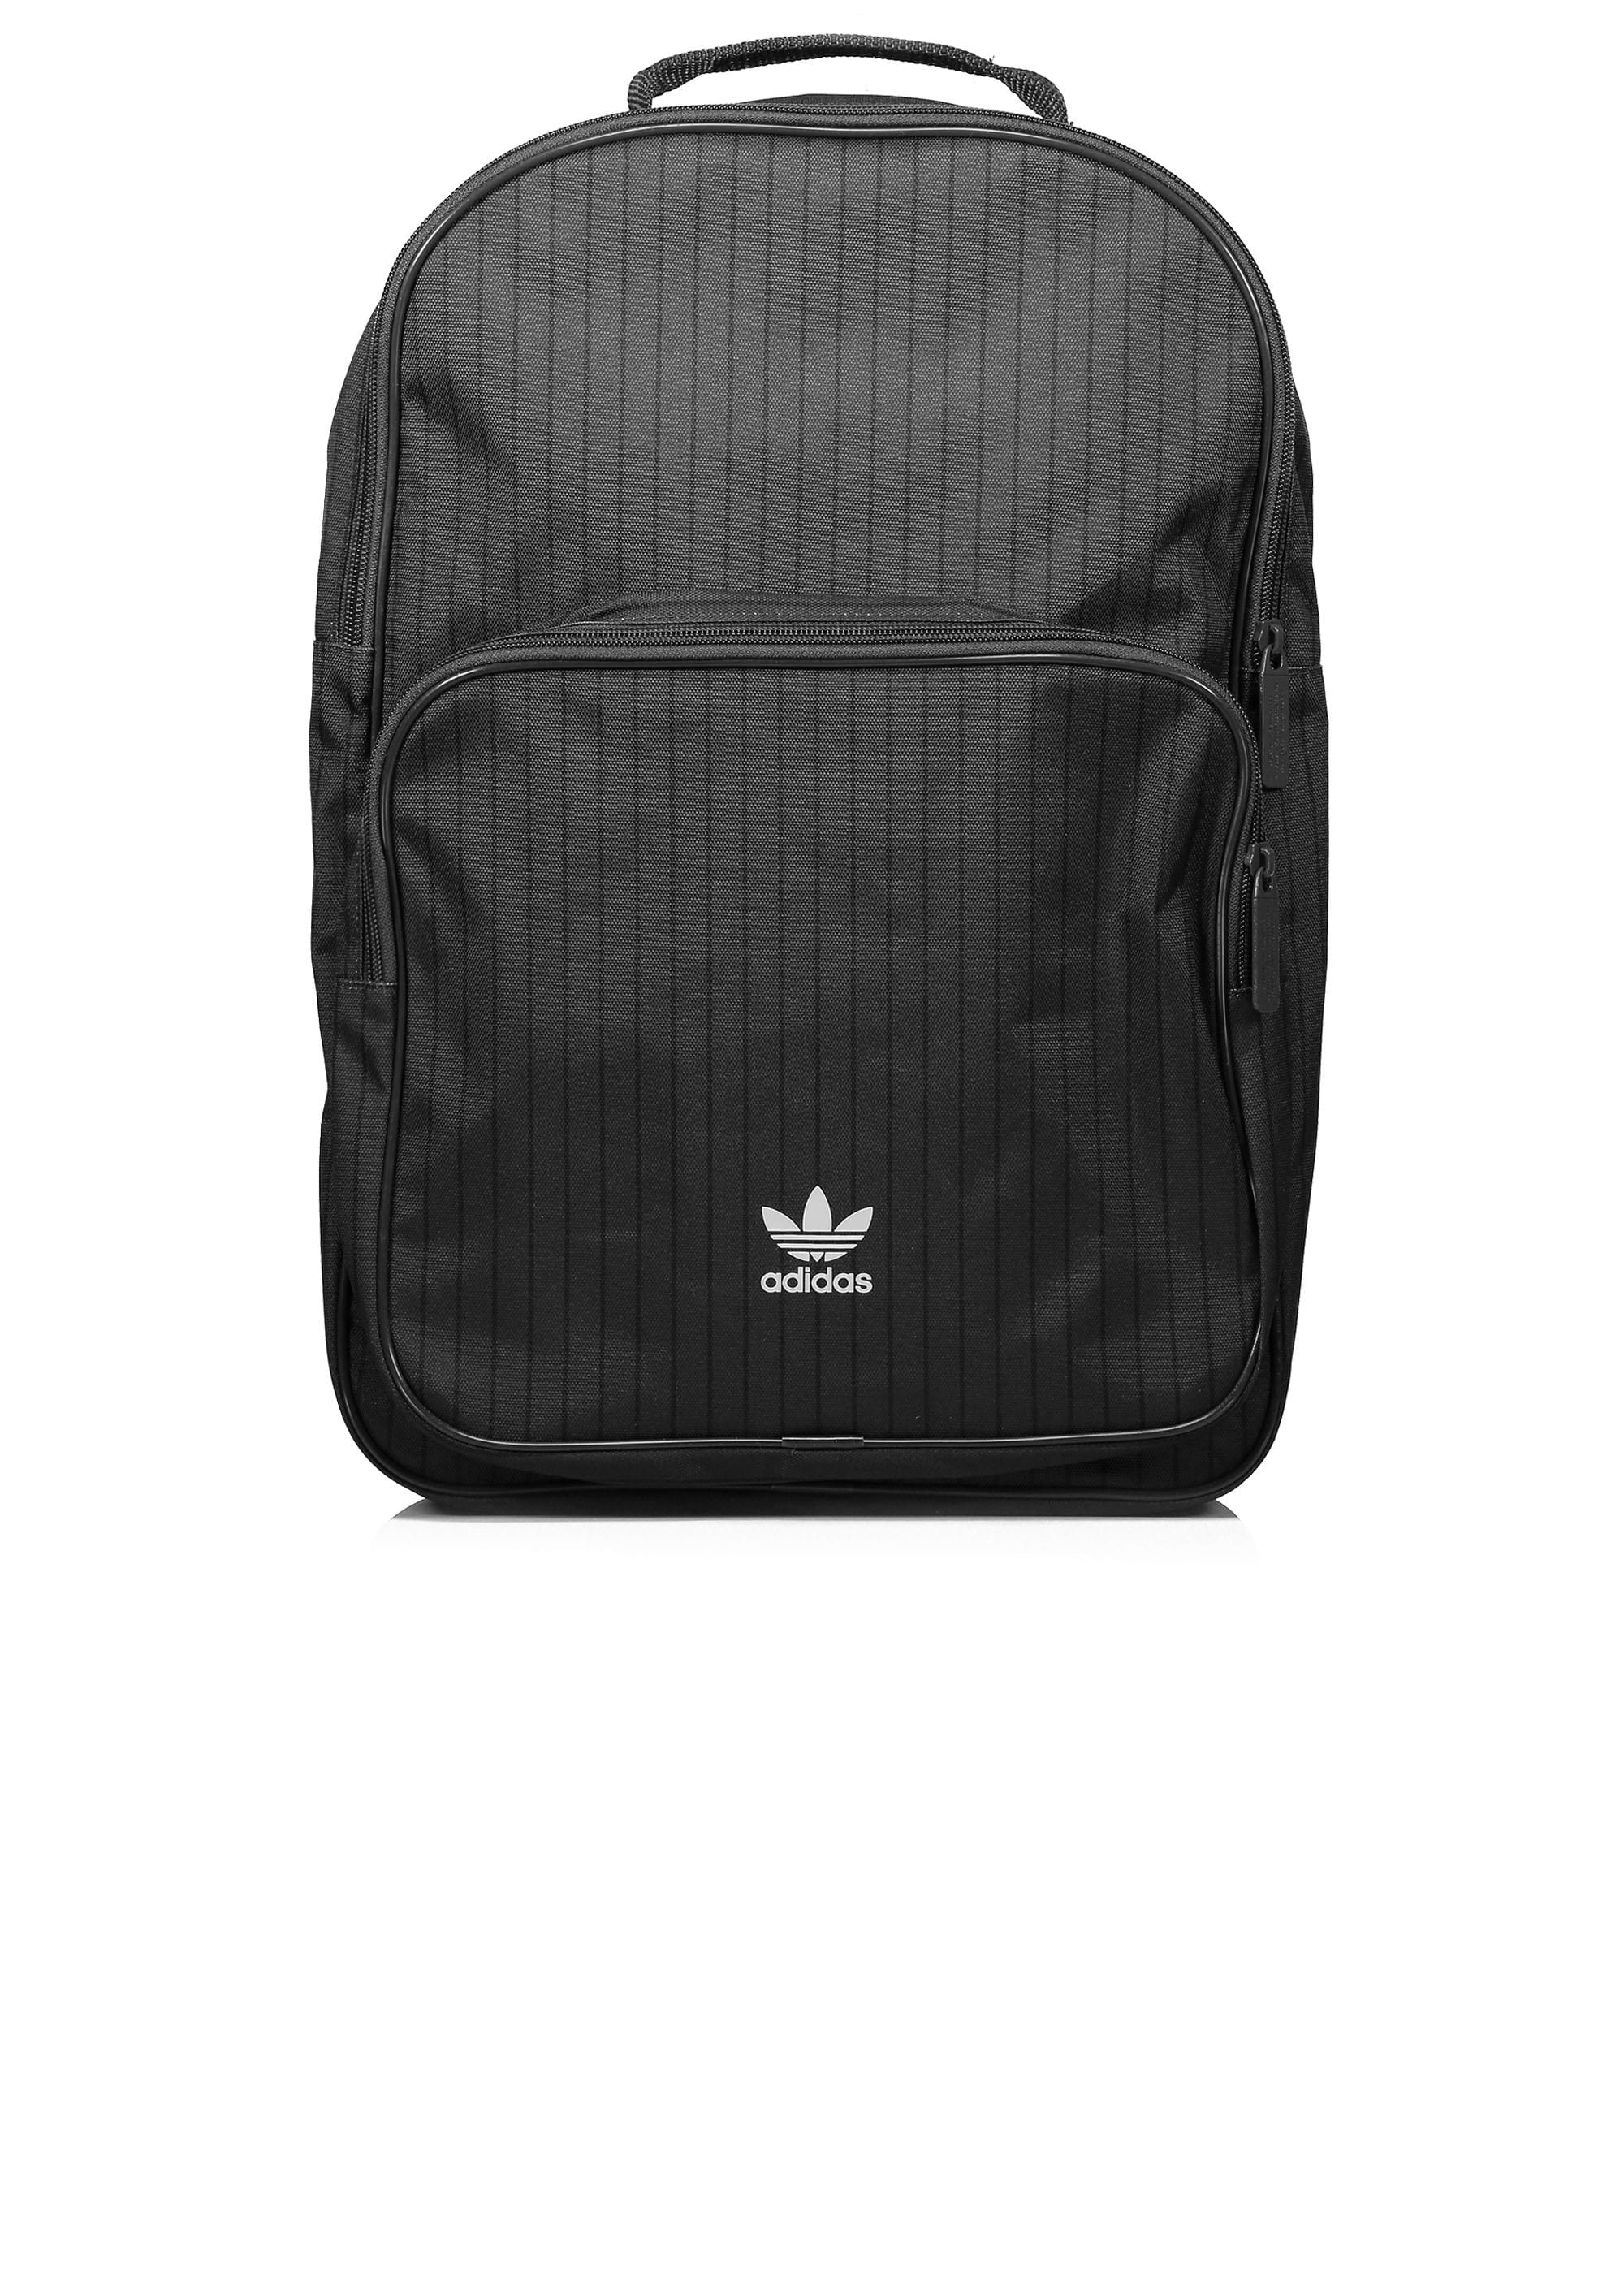 adidas Originals Apparel Classic Backpack - Carbon - Bags from Triads UK 4661bb2502987